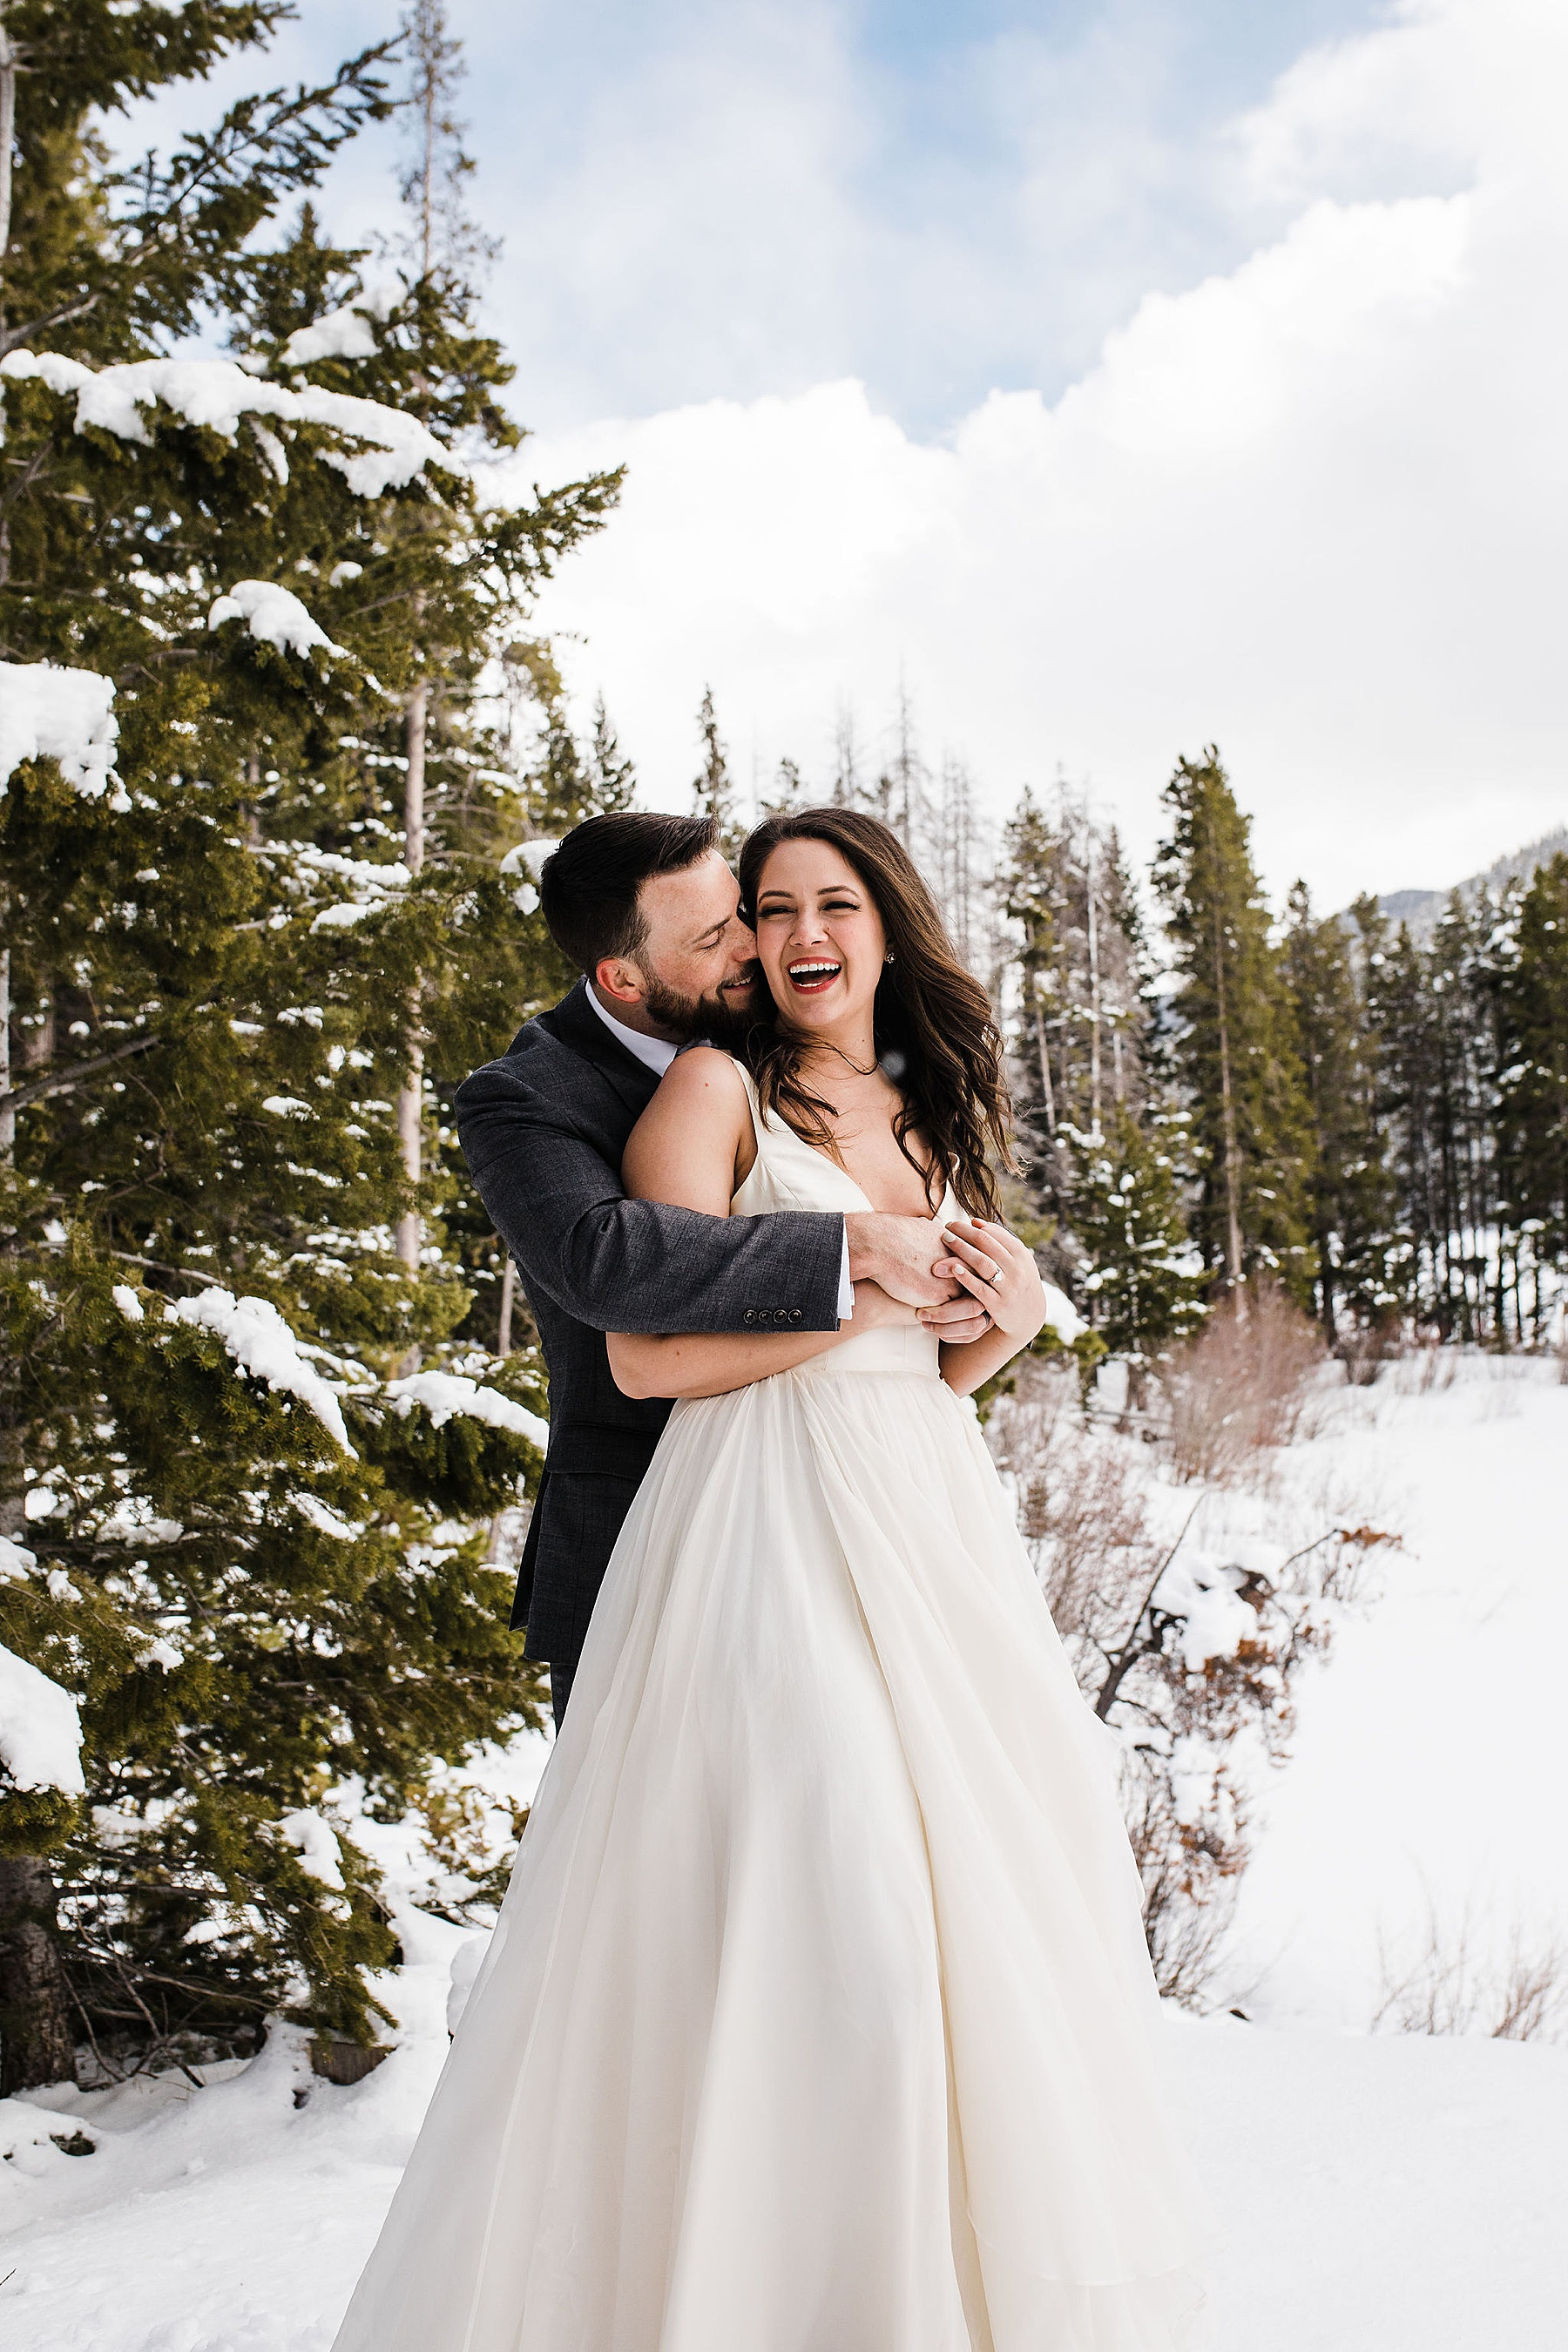 Colorado Hiking Elopement | Colorado Elopement Photographer + Videographer | Vow of the Wild